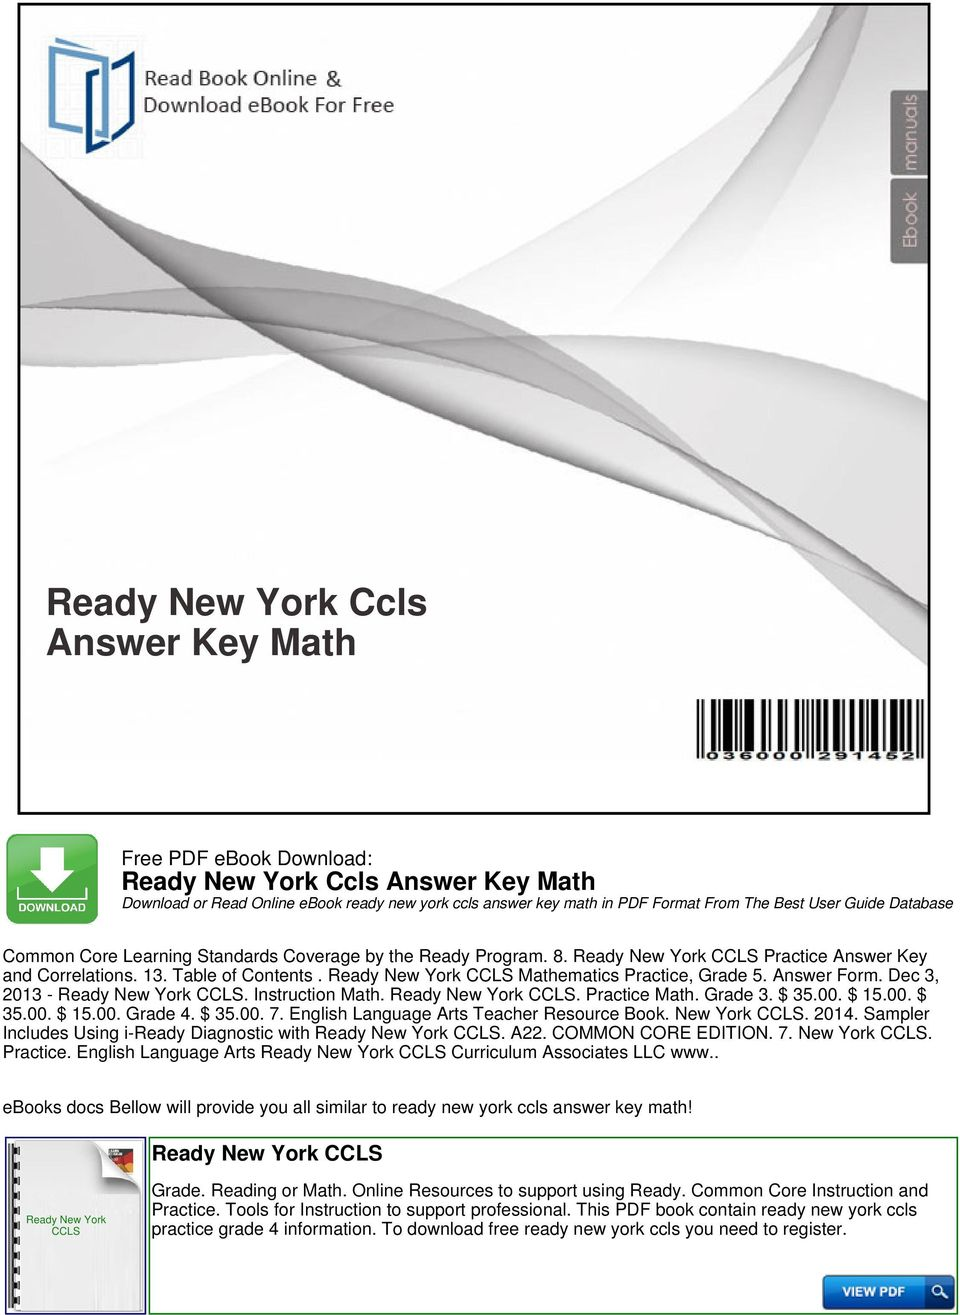 Ready new york ccls answer key math pdf grade 3 3500 1500 3500 1500 grade fandeluxe Image collections